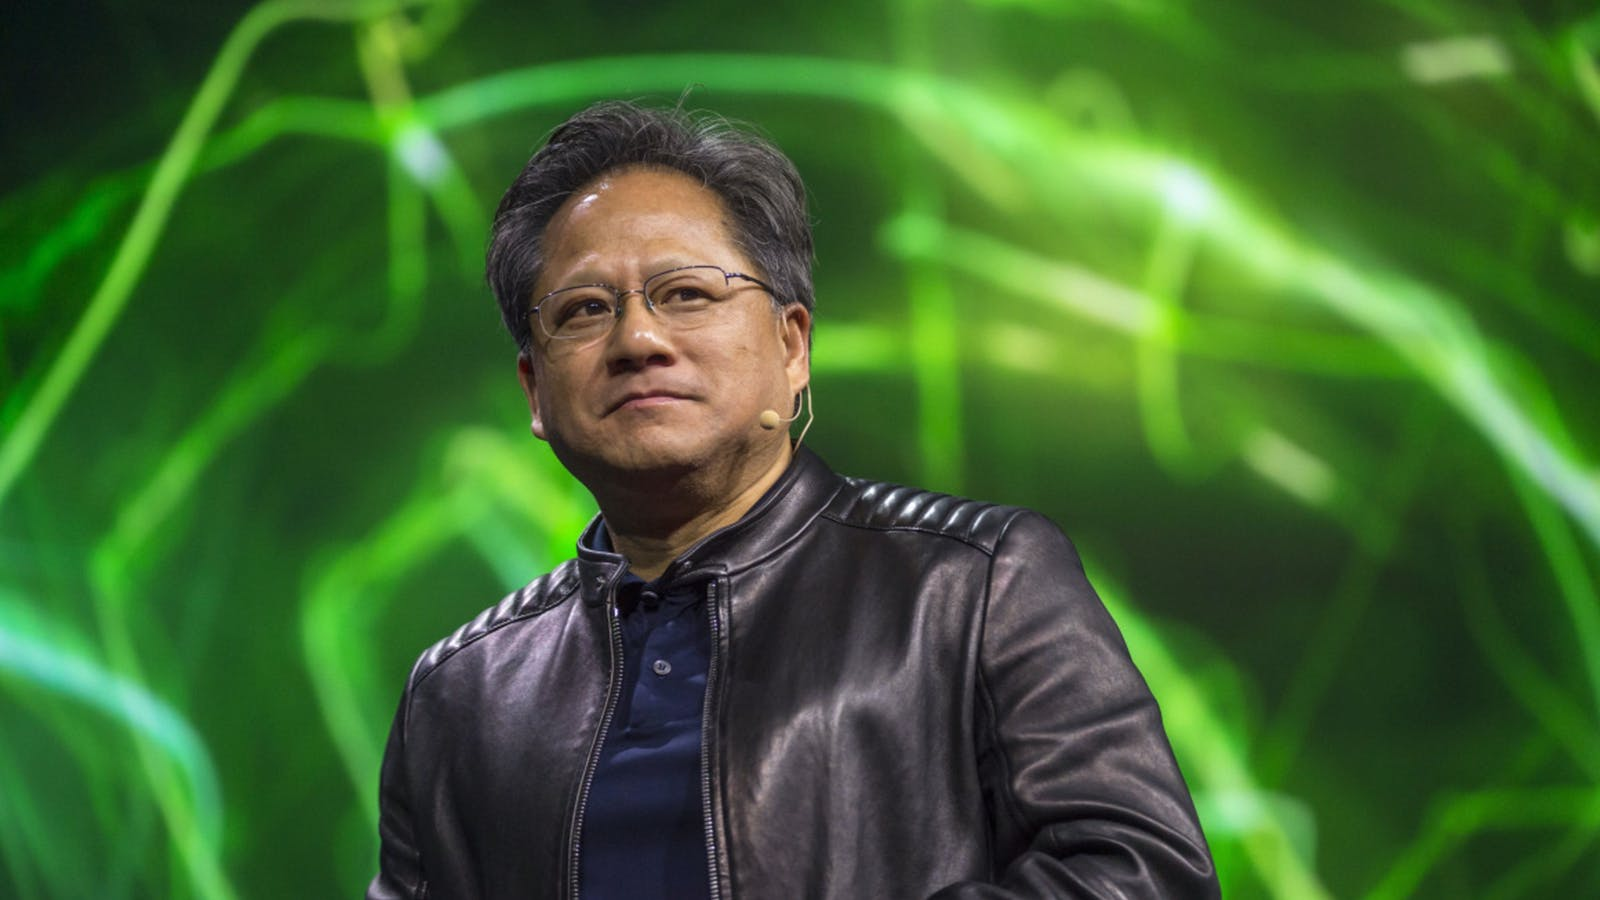 Nvidia CEO Jensen Huang. Photo by Bloomberg